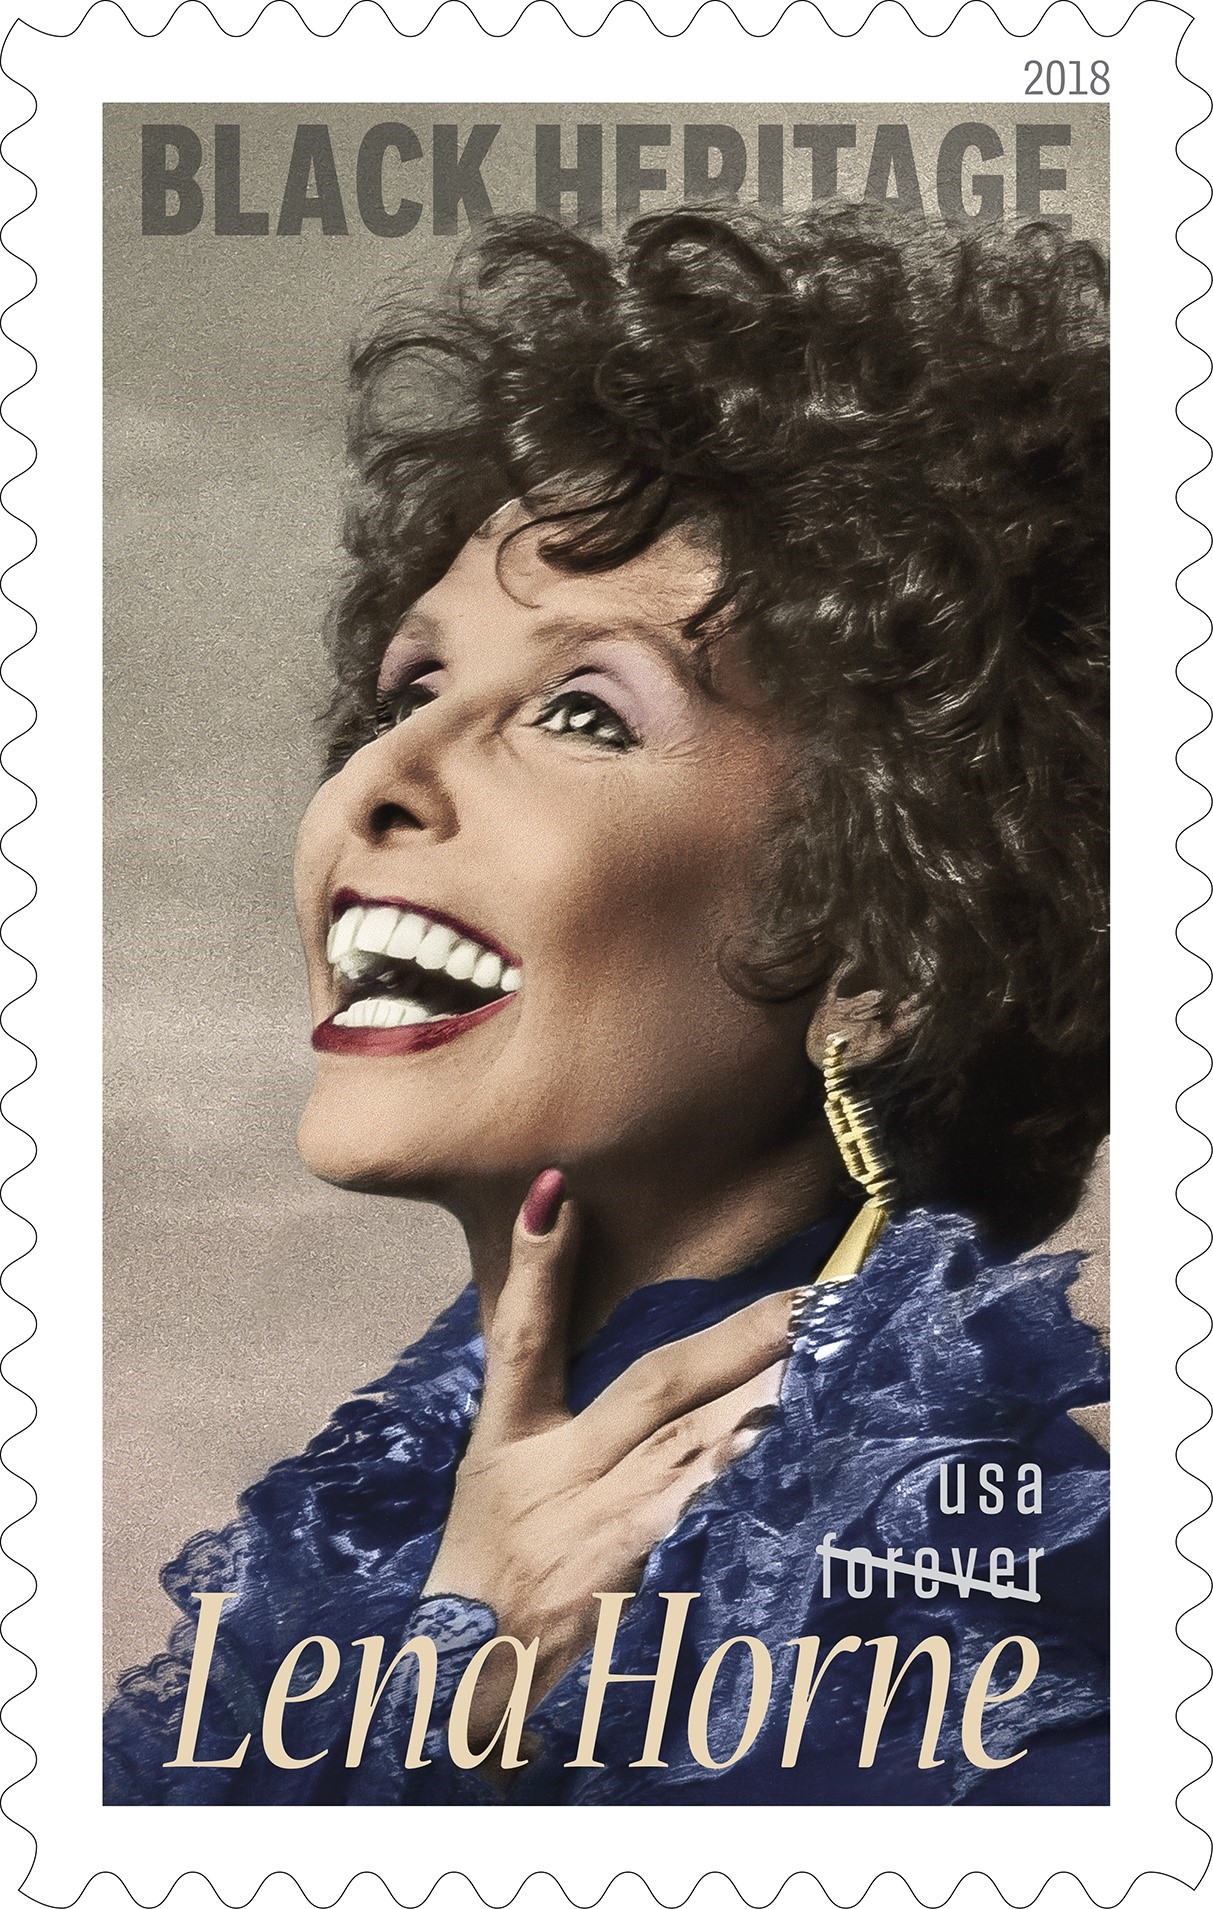 USPS' Lena Horne Black Heritage stamp features a 1980s photograph taken by Christian Steiner.